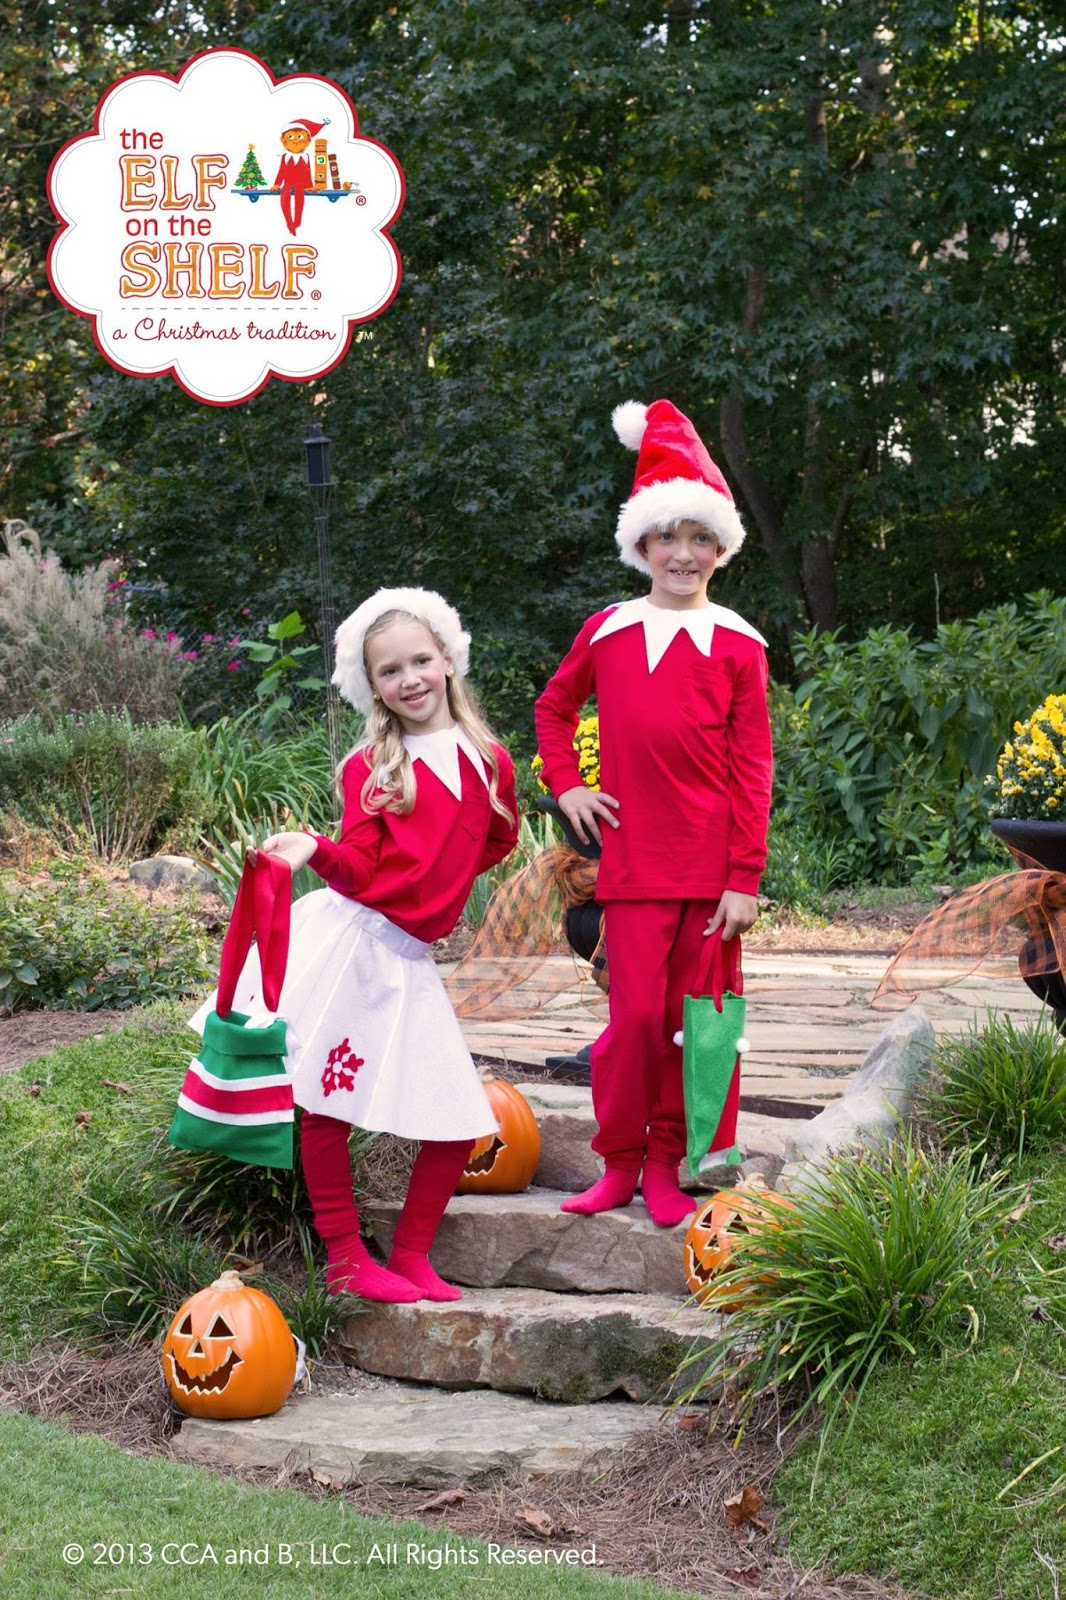 Diy elf on the shelf costume for halloween frugalicious marie diy elf on the shelf costume for halloween solutioingenieria Image collections